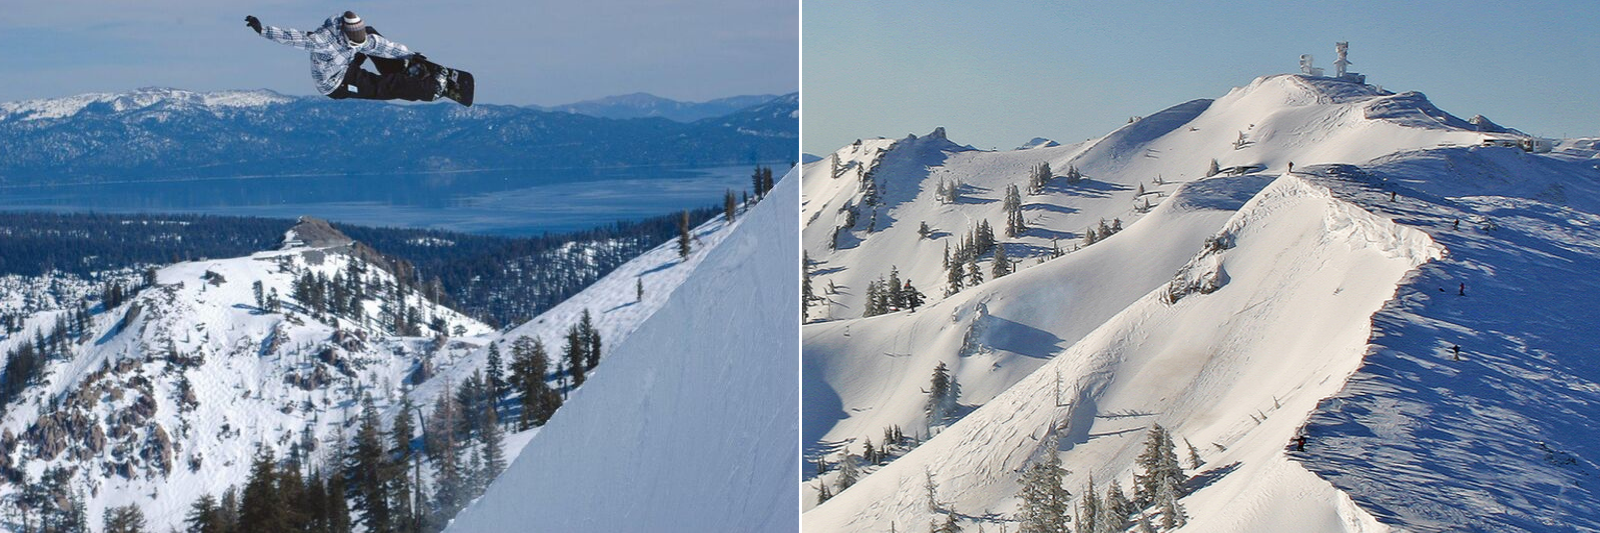 Squaw Valley in winter with Lake Tahoe in the background and Estelle Bowl at Alpine Meadows | Photo: Eddy Ancinas | Squaw Valley and Alpine Meadows: Tales from Two Valleys 70th Anniversary Edition